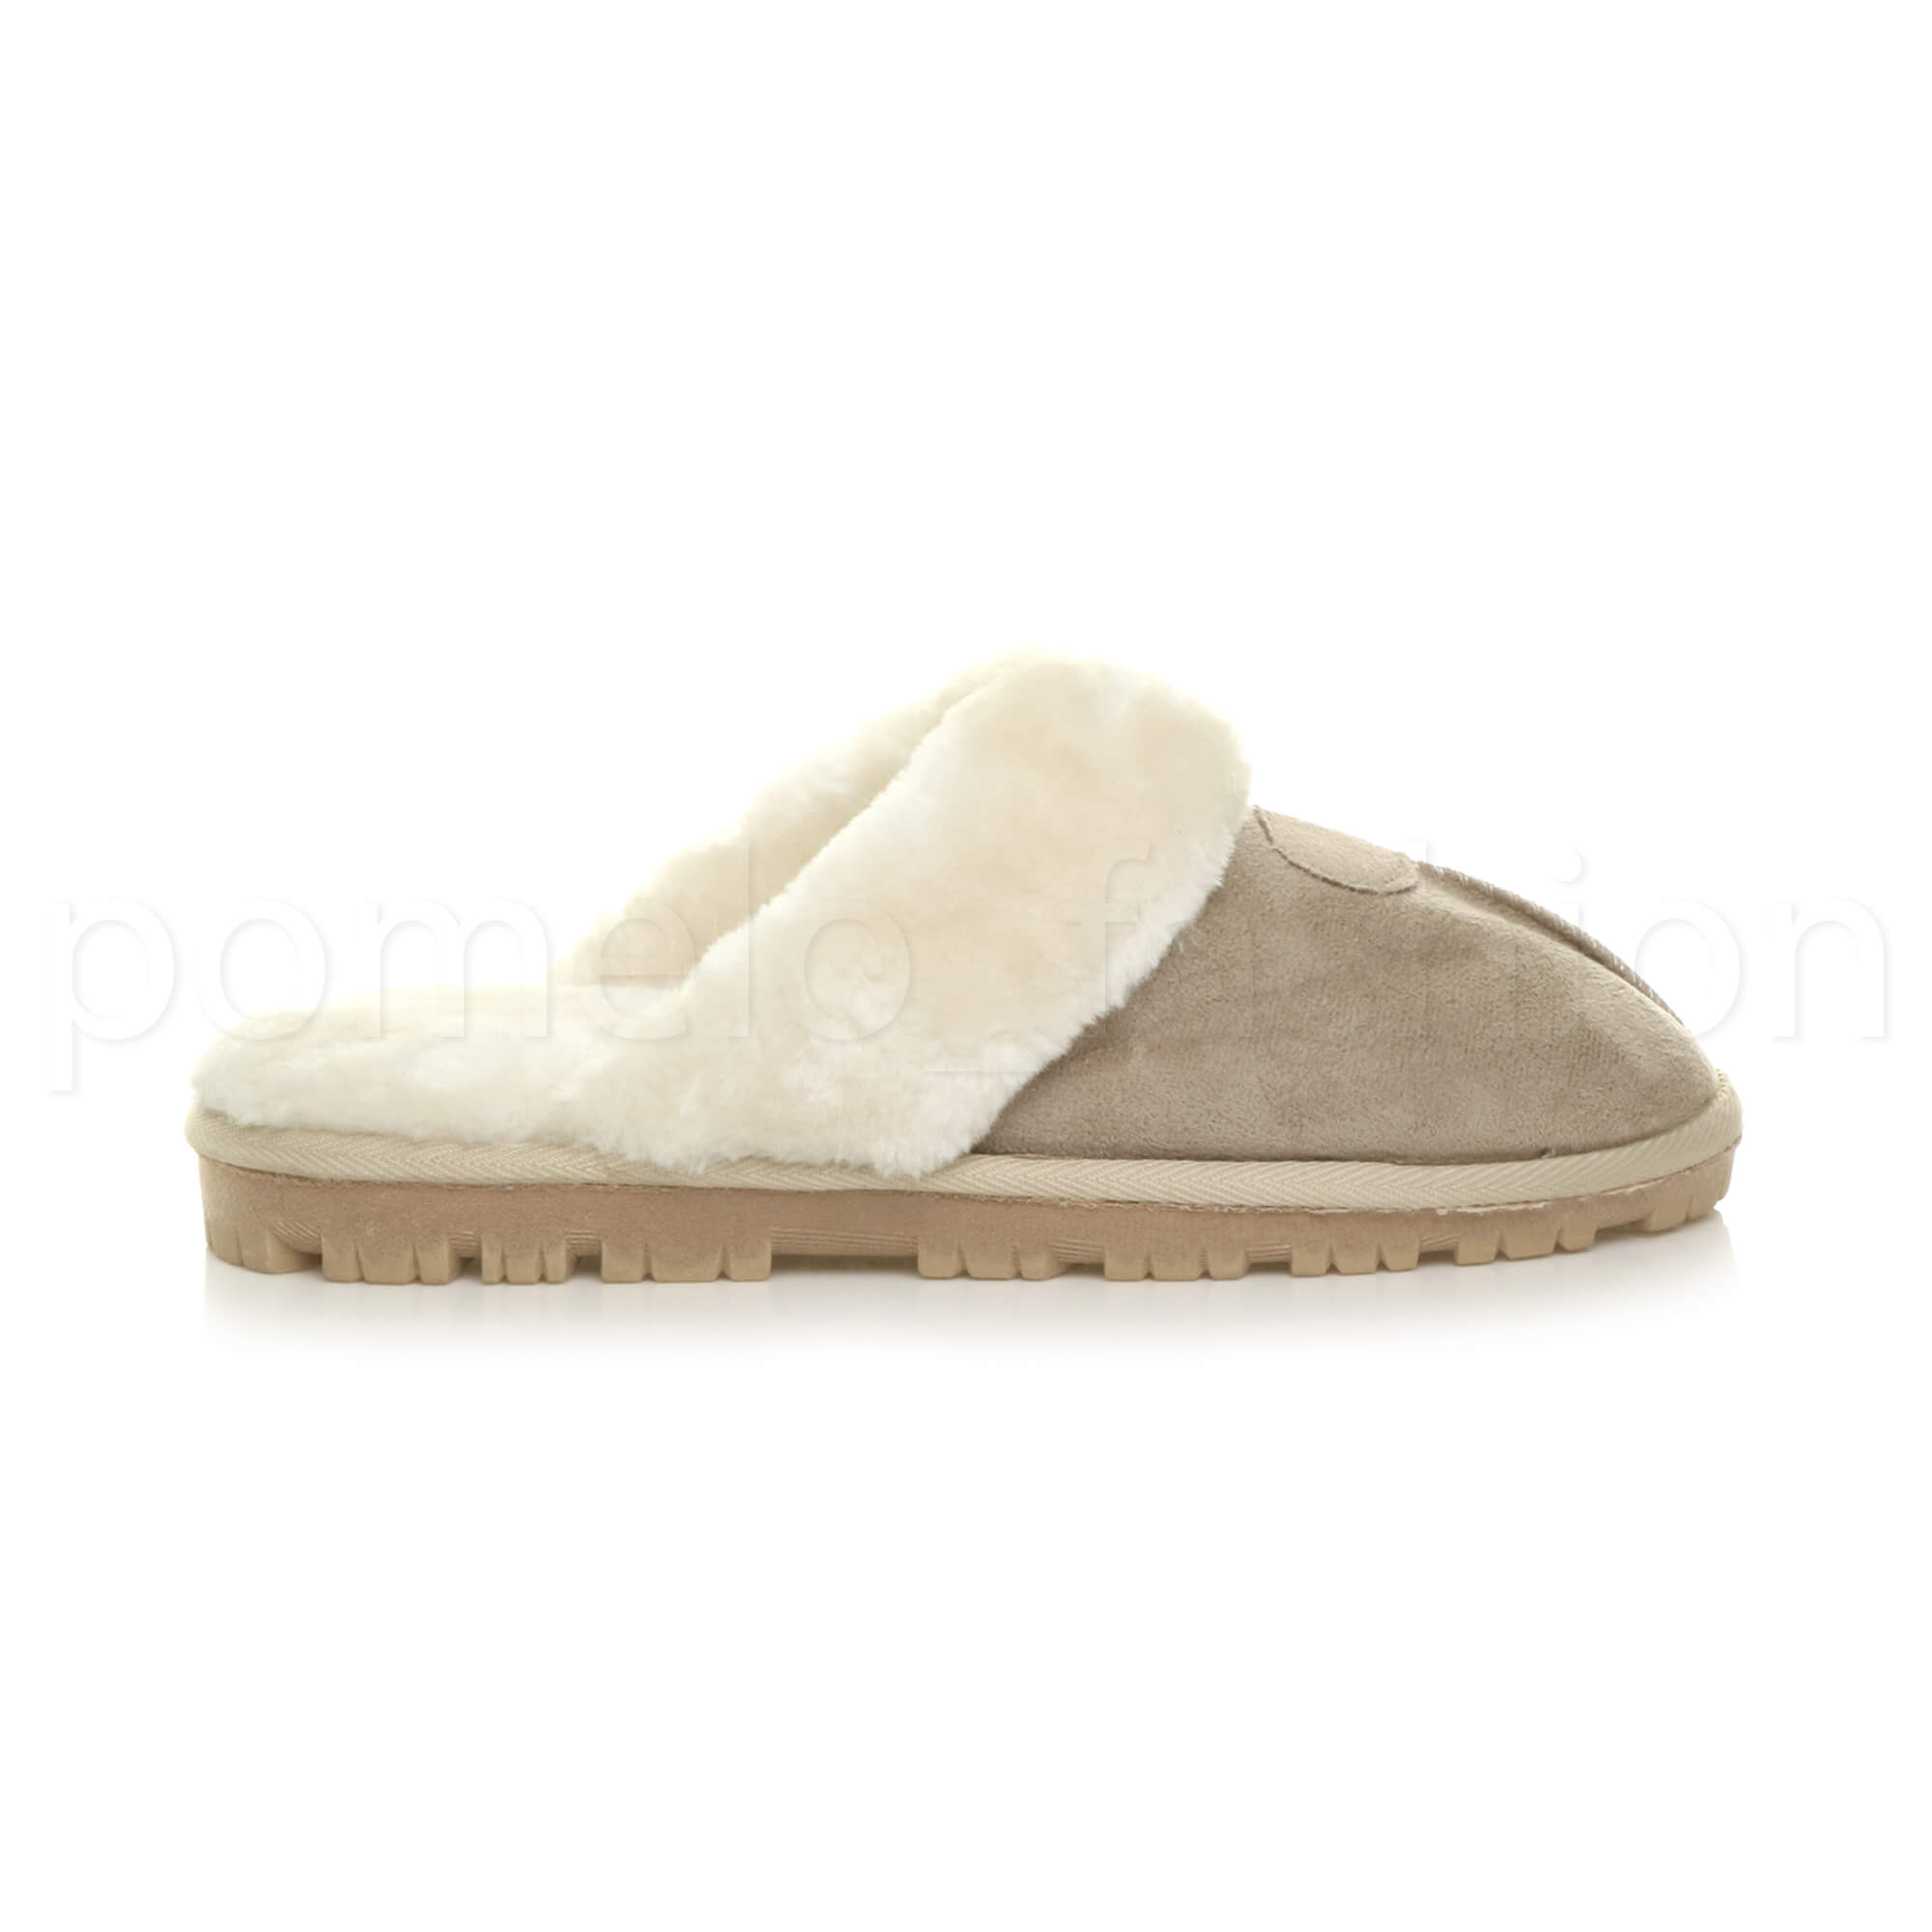 WOMENS-LADIES-FLAT-FUR-LINED-COMFORTABLE-WINTER-MULES-SLIPPERS-HOUSE-SHOES-SIZE thumbnail 3